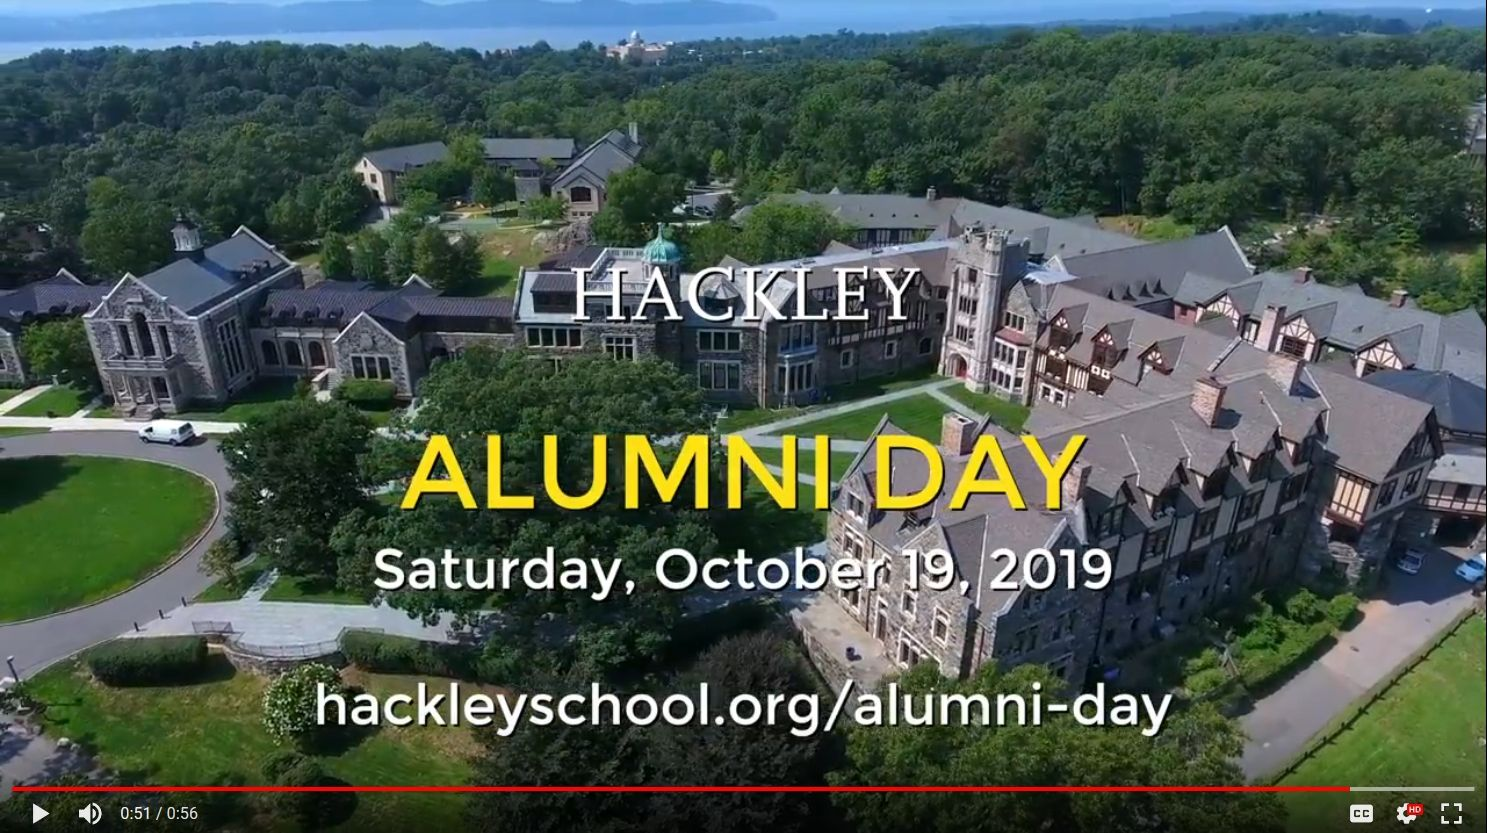 Alumni Day 2019 Welcome Video